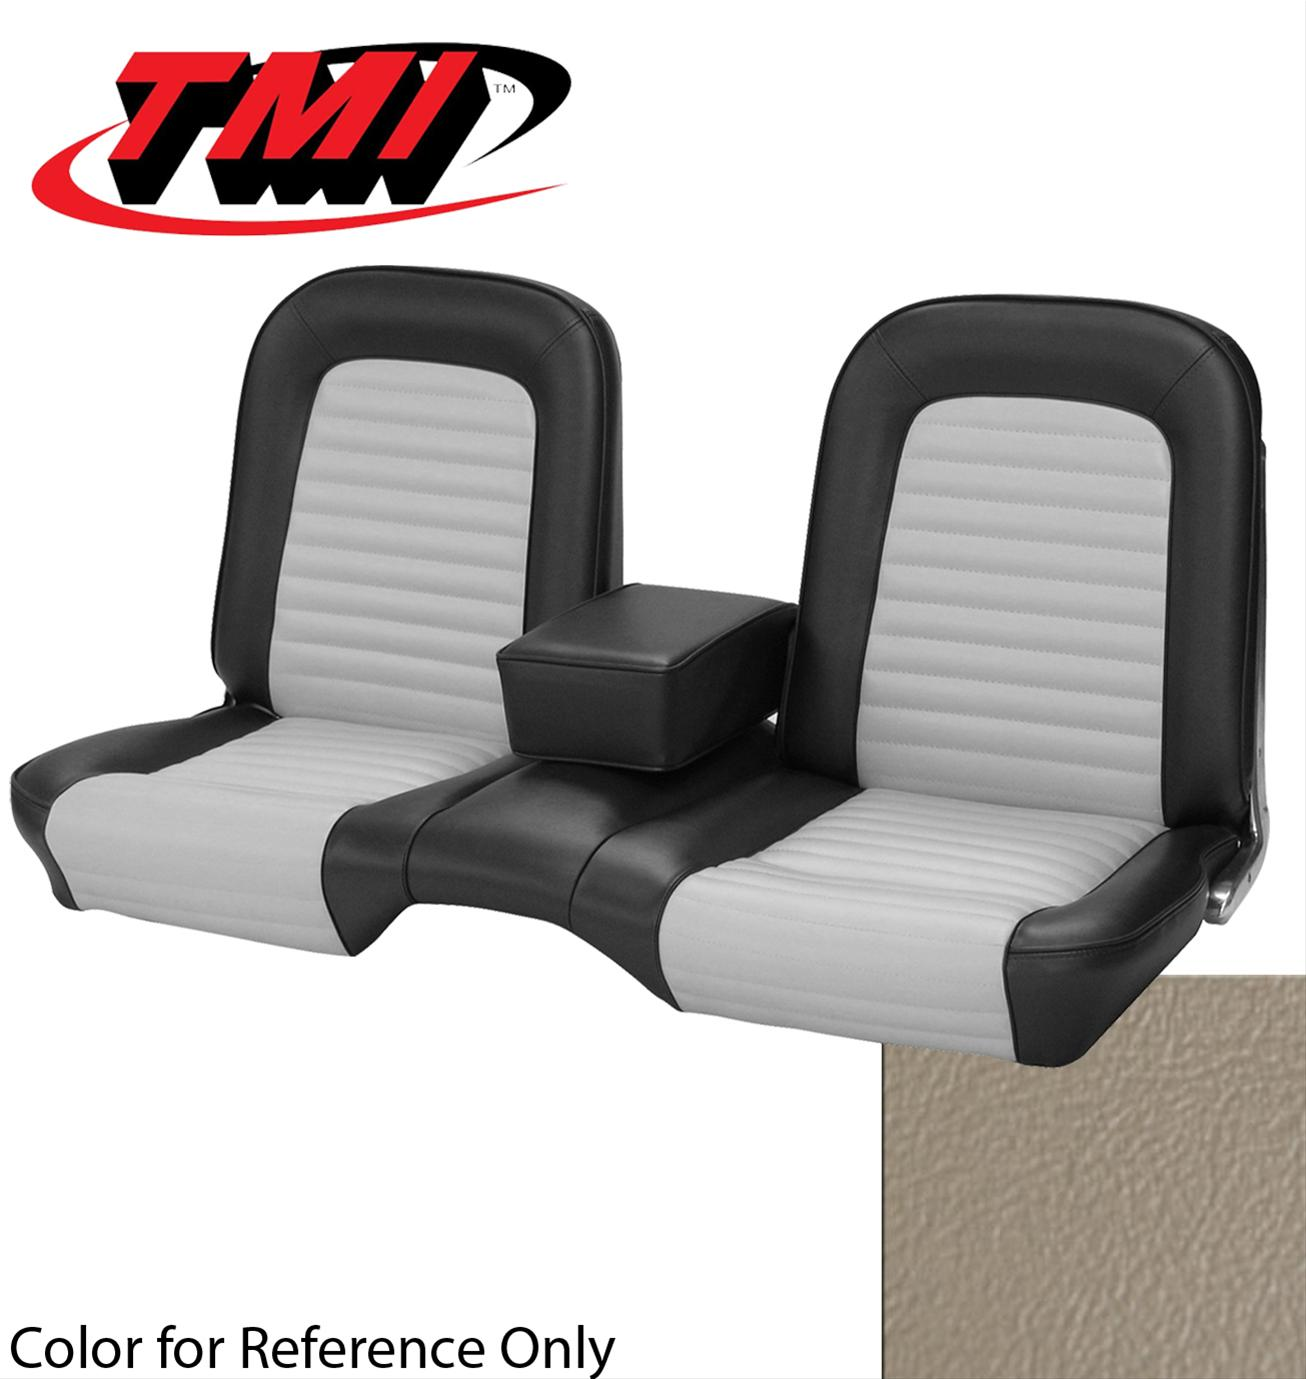 1965 Ford Mustang Tmi Standard Seat Upholstery 43 70305 2290 Free